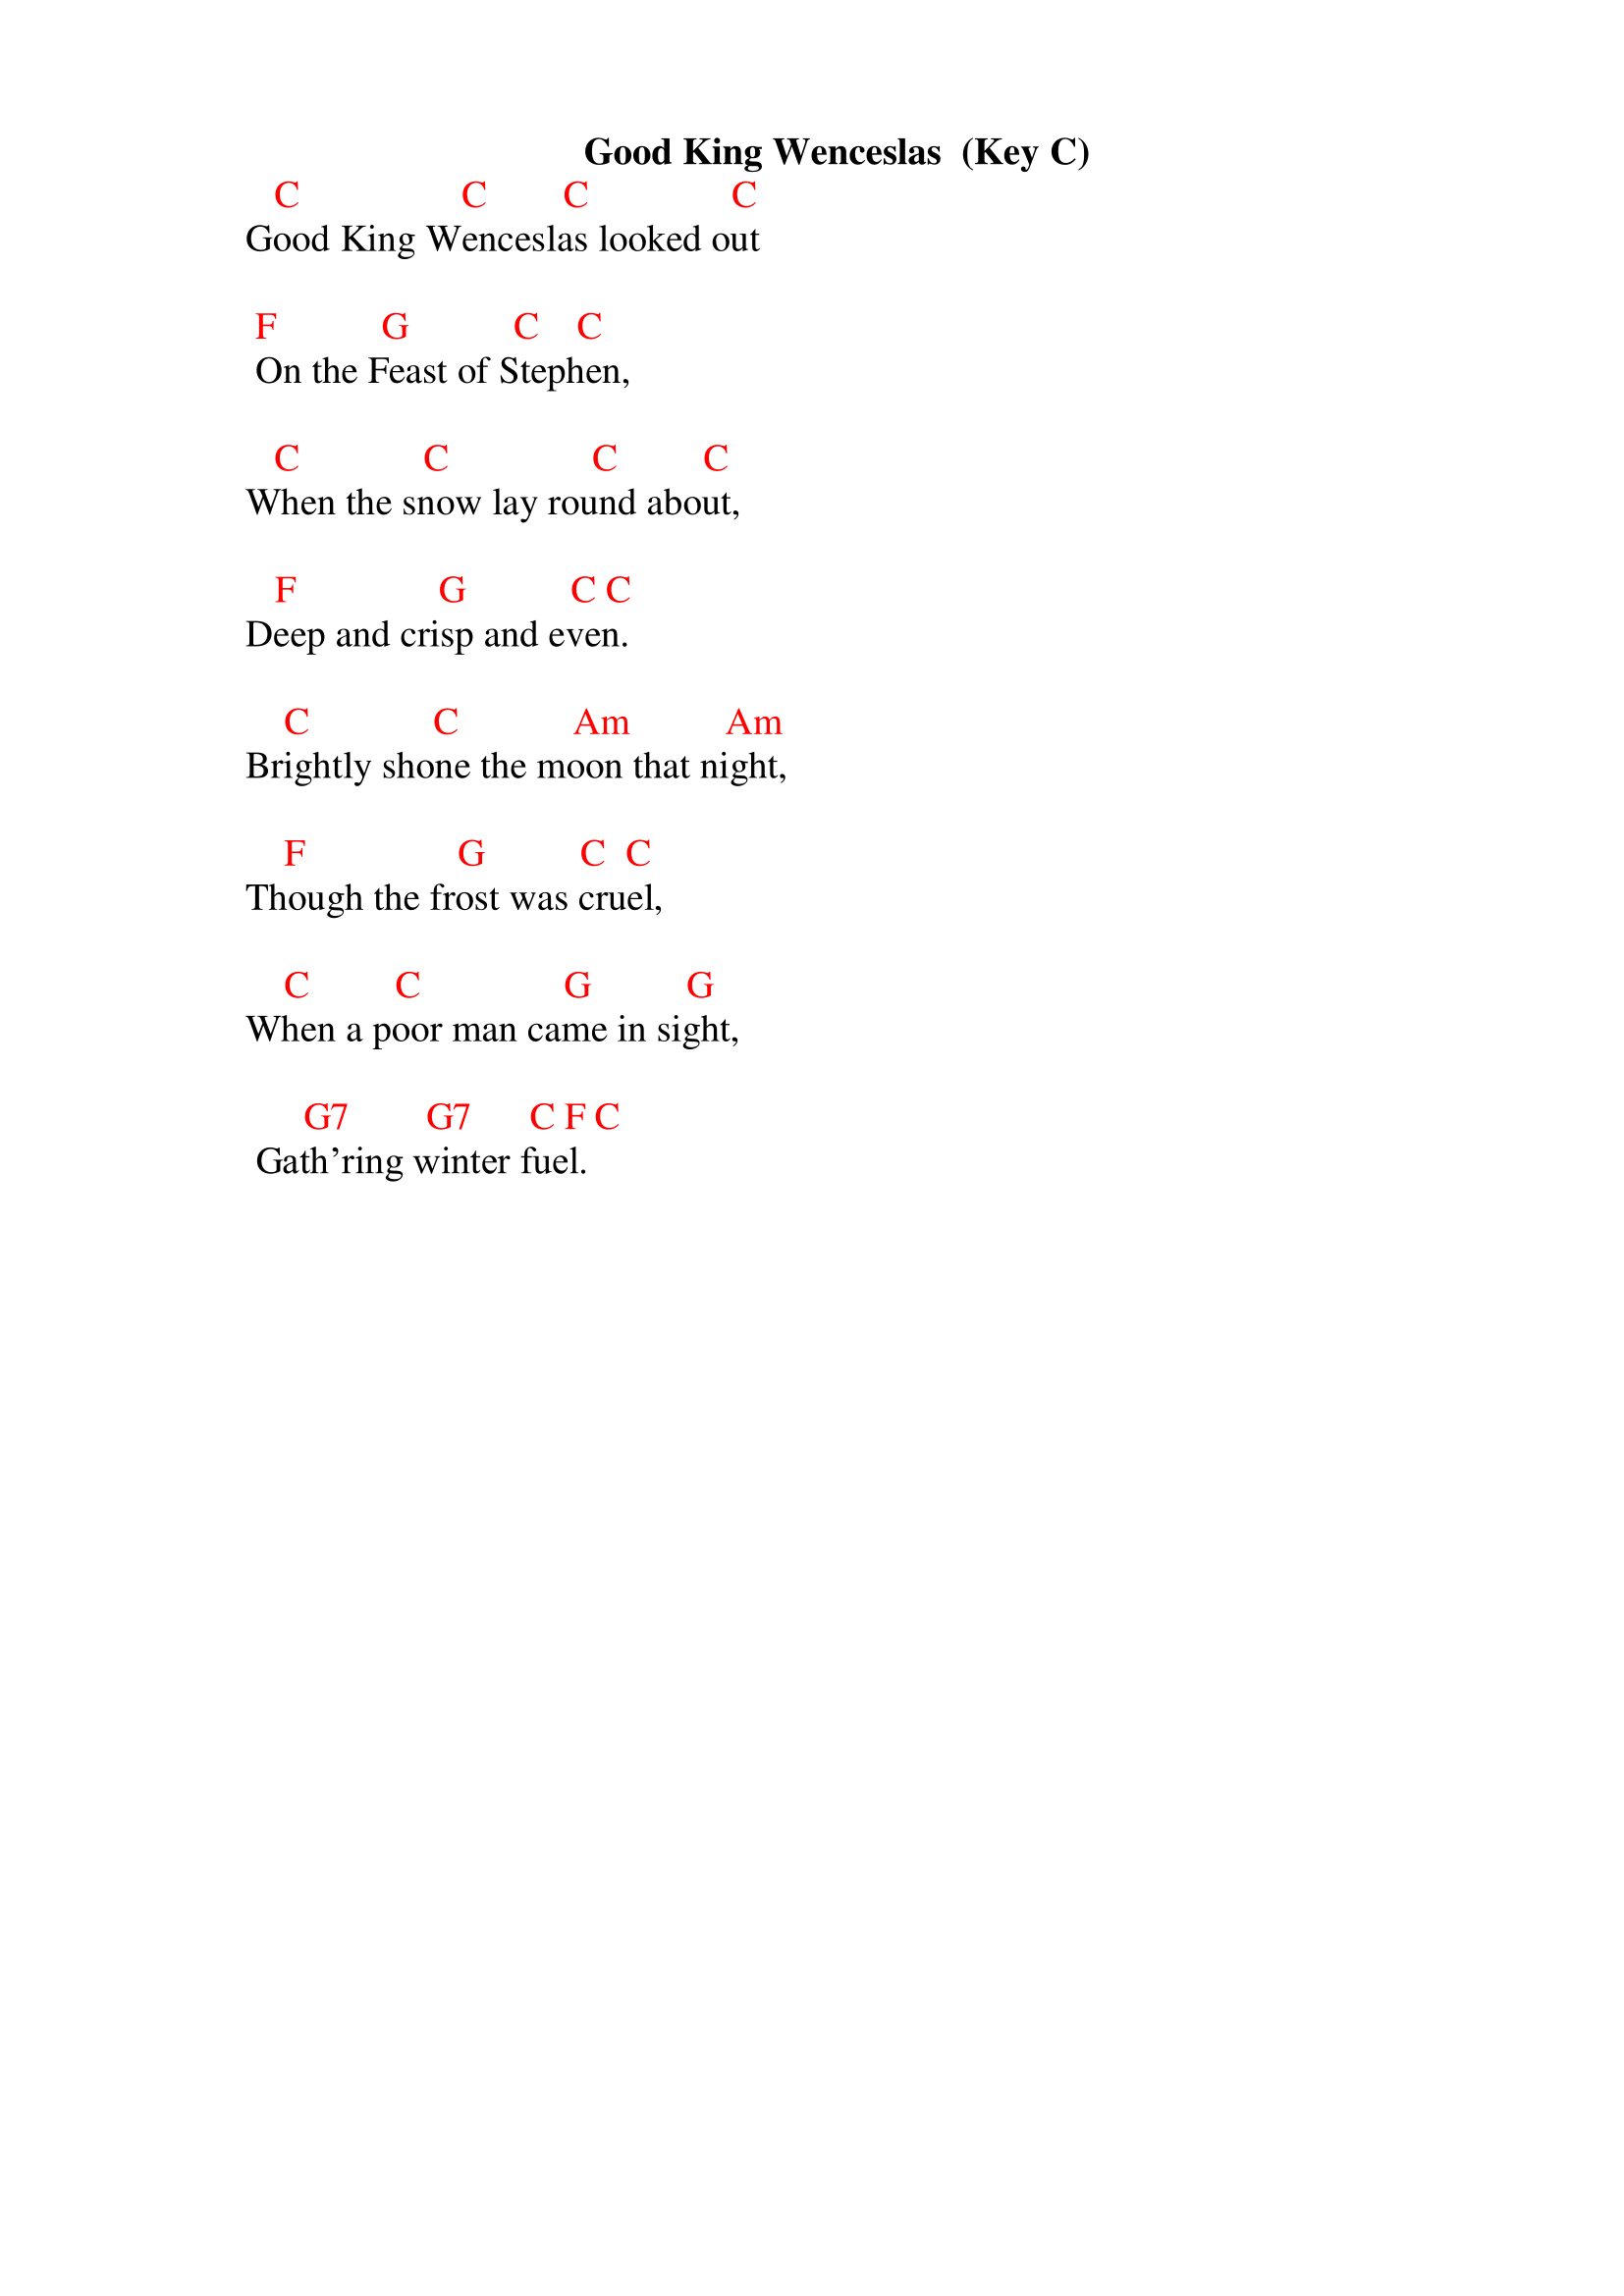 good-king-wenceslas-lyrics-chords